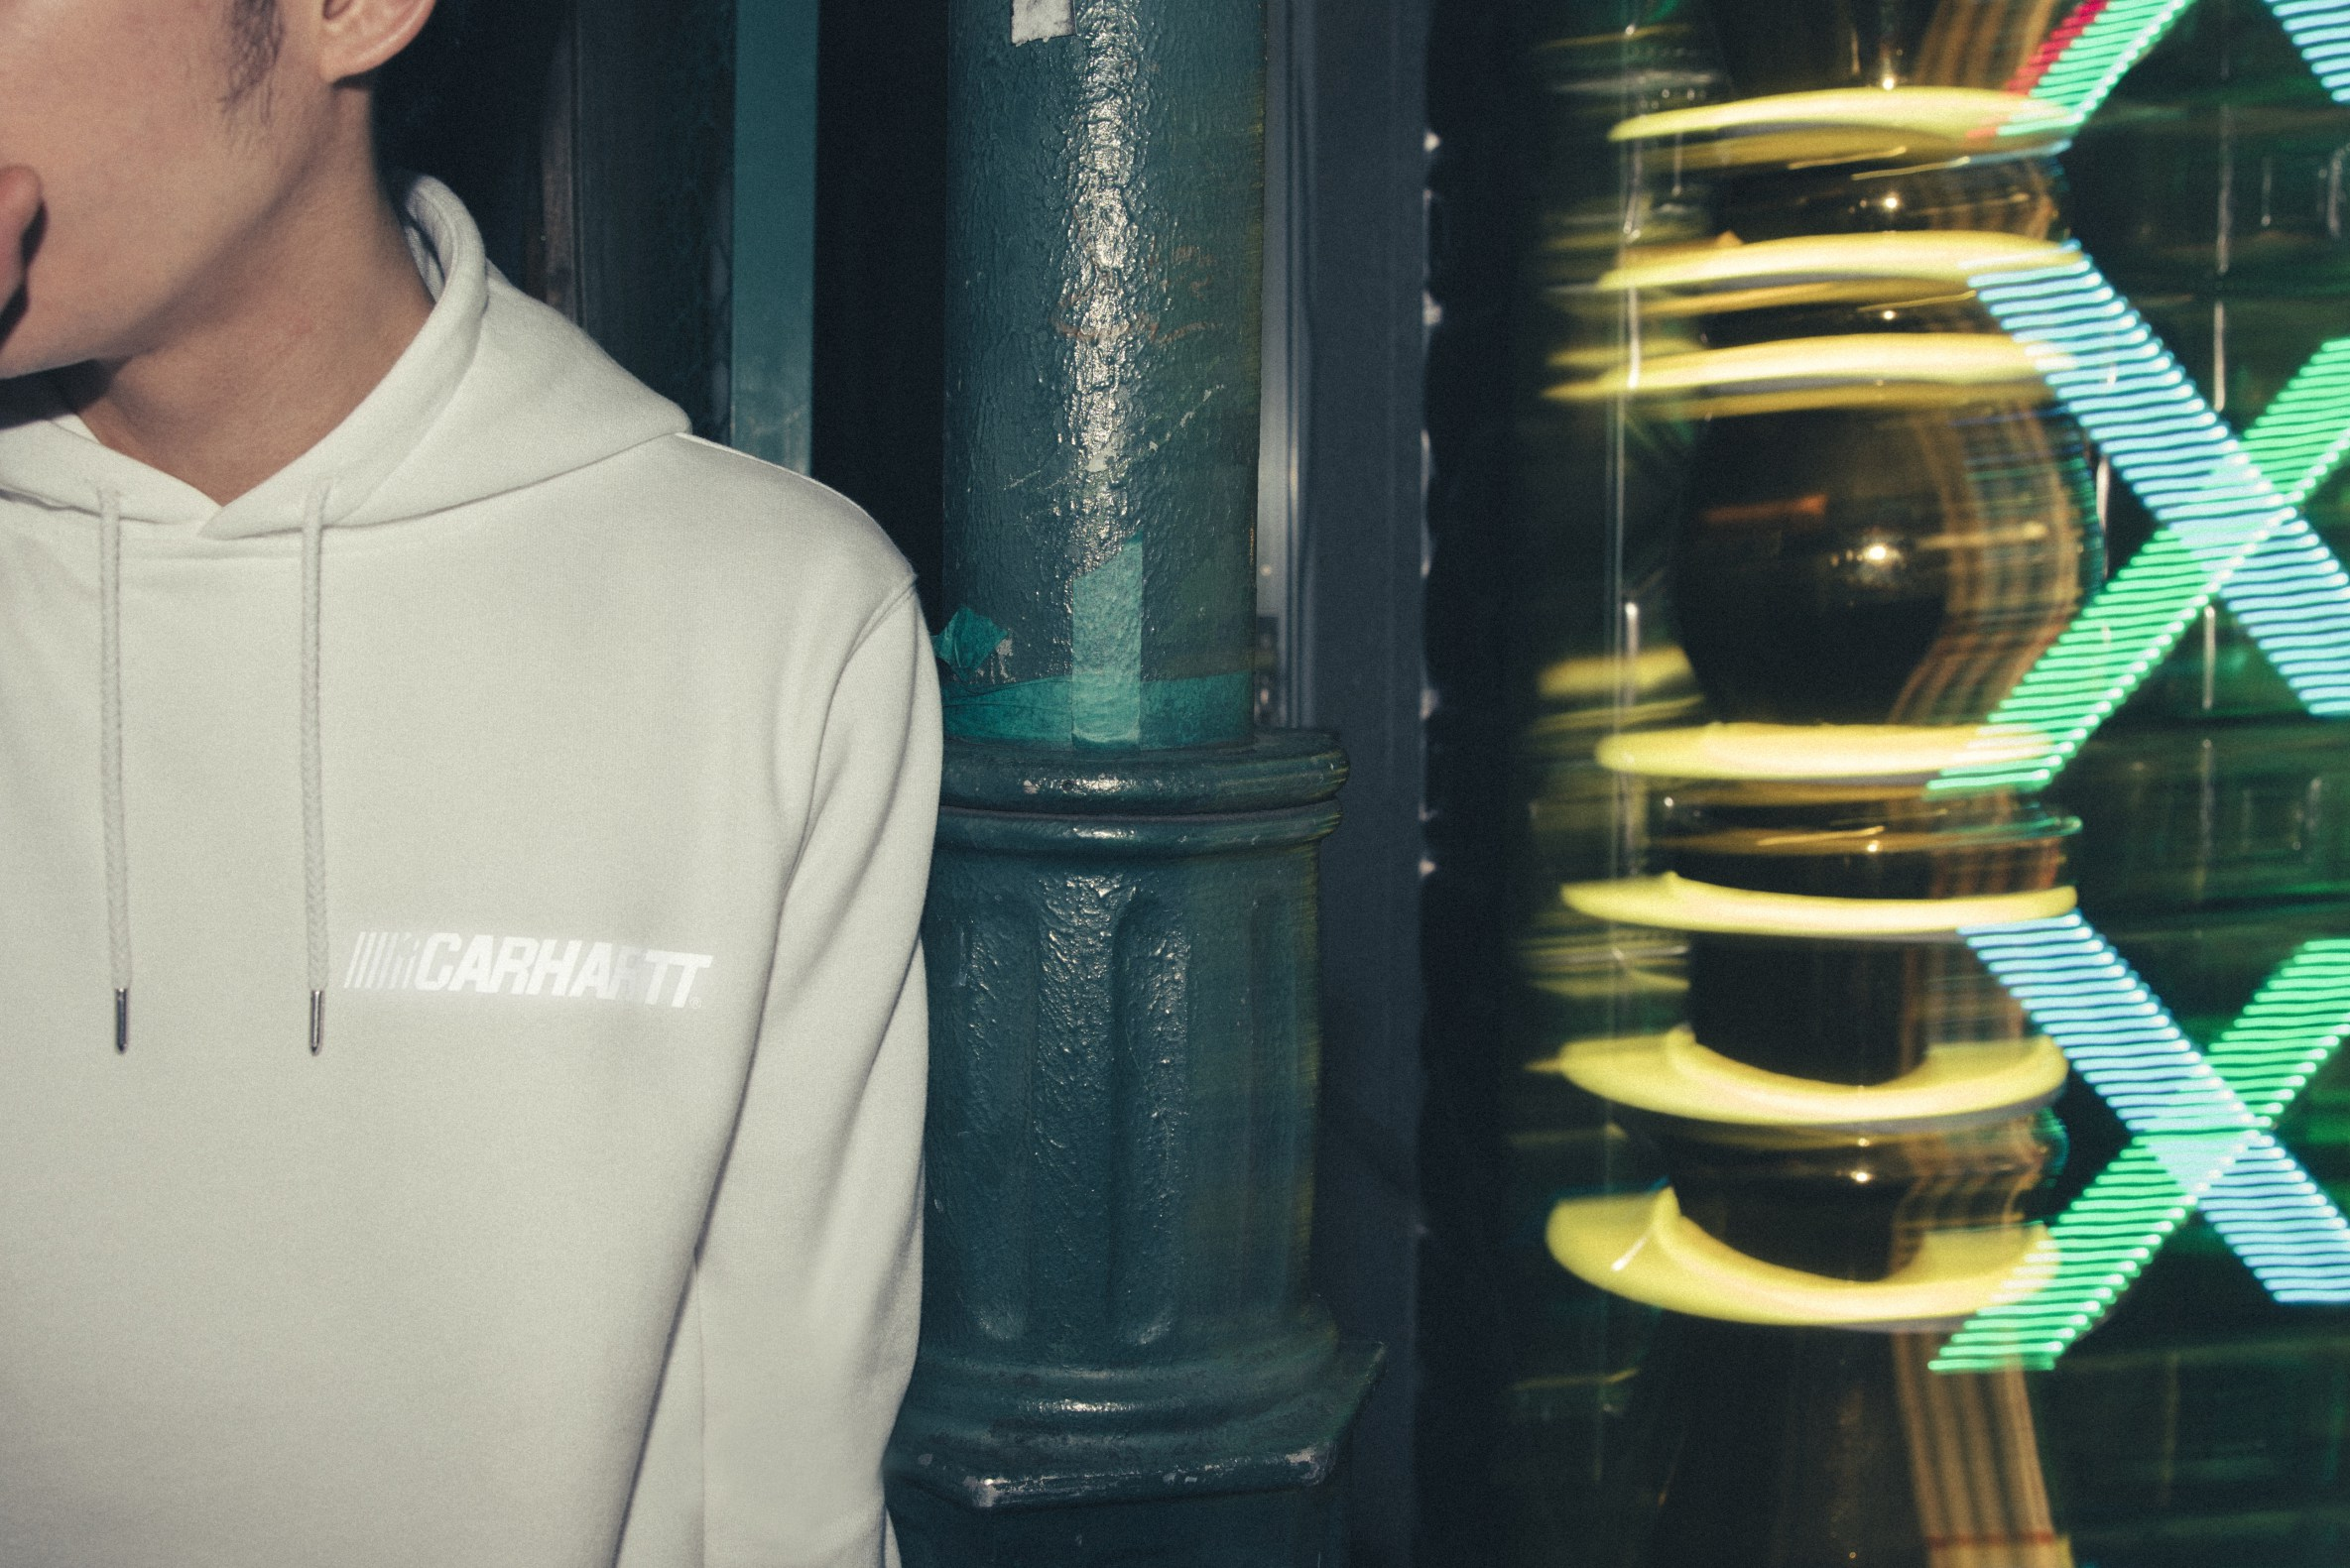 carhartt-wip-2016-fall-capsule-collection-02